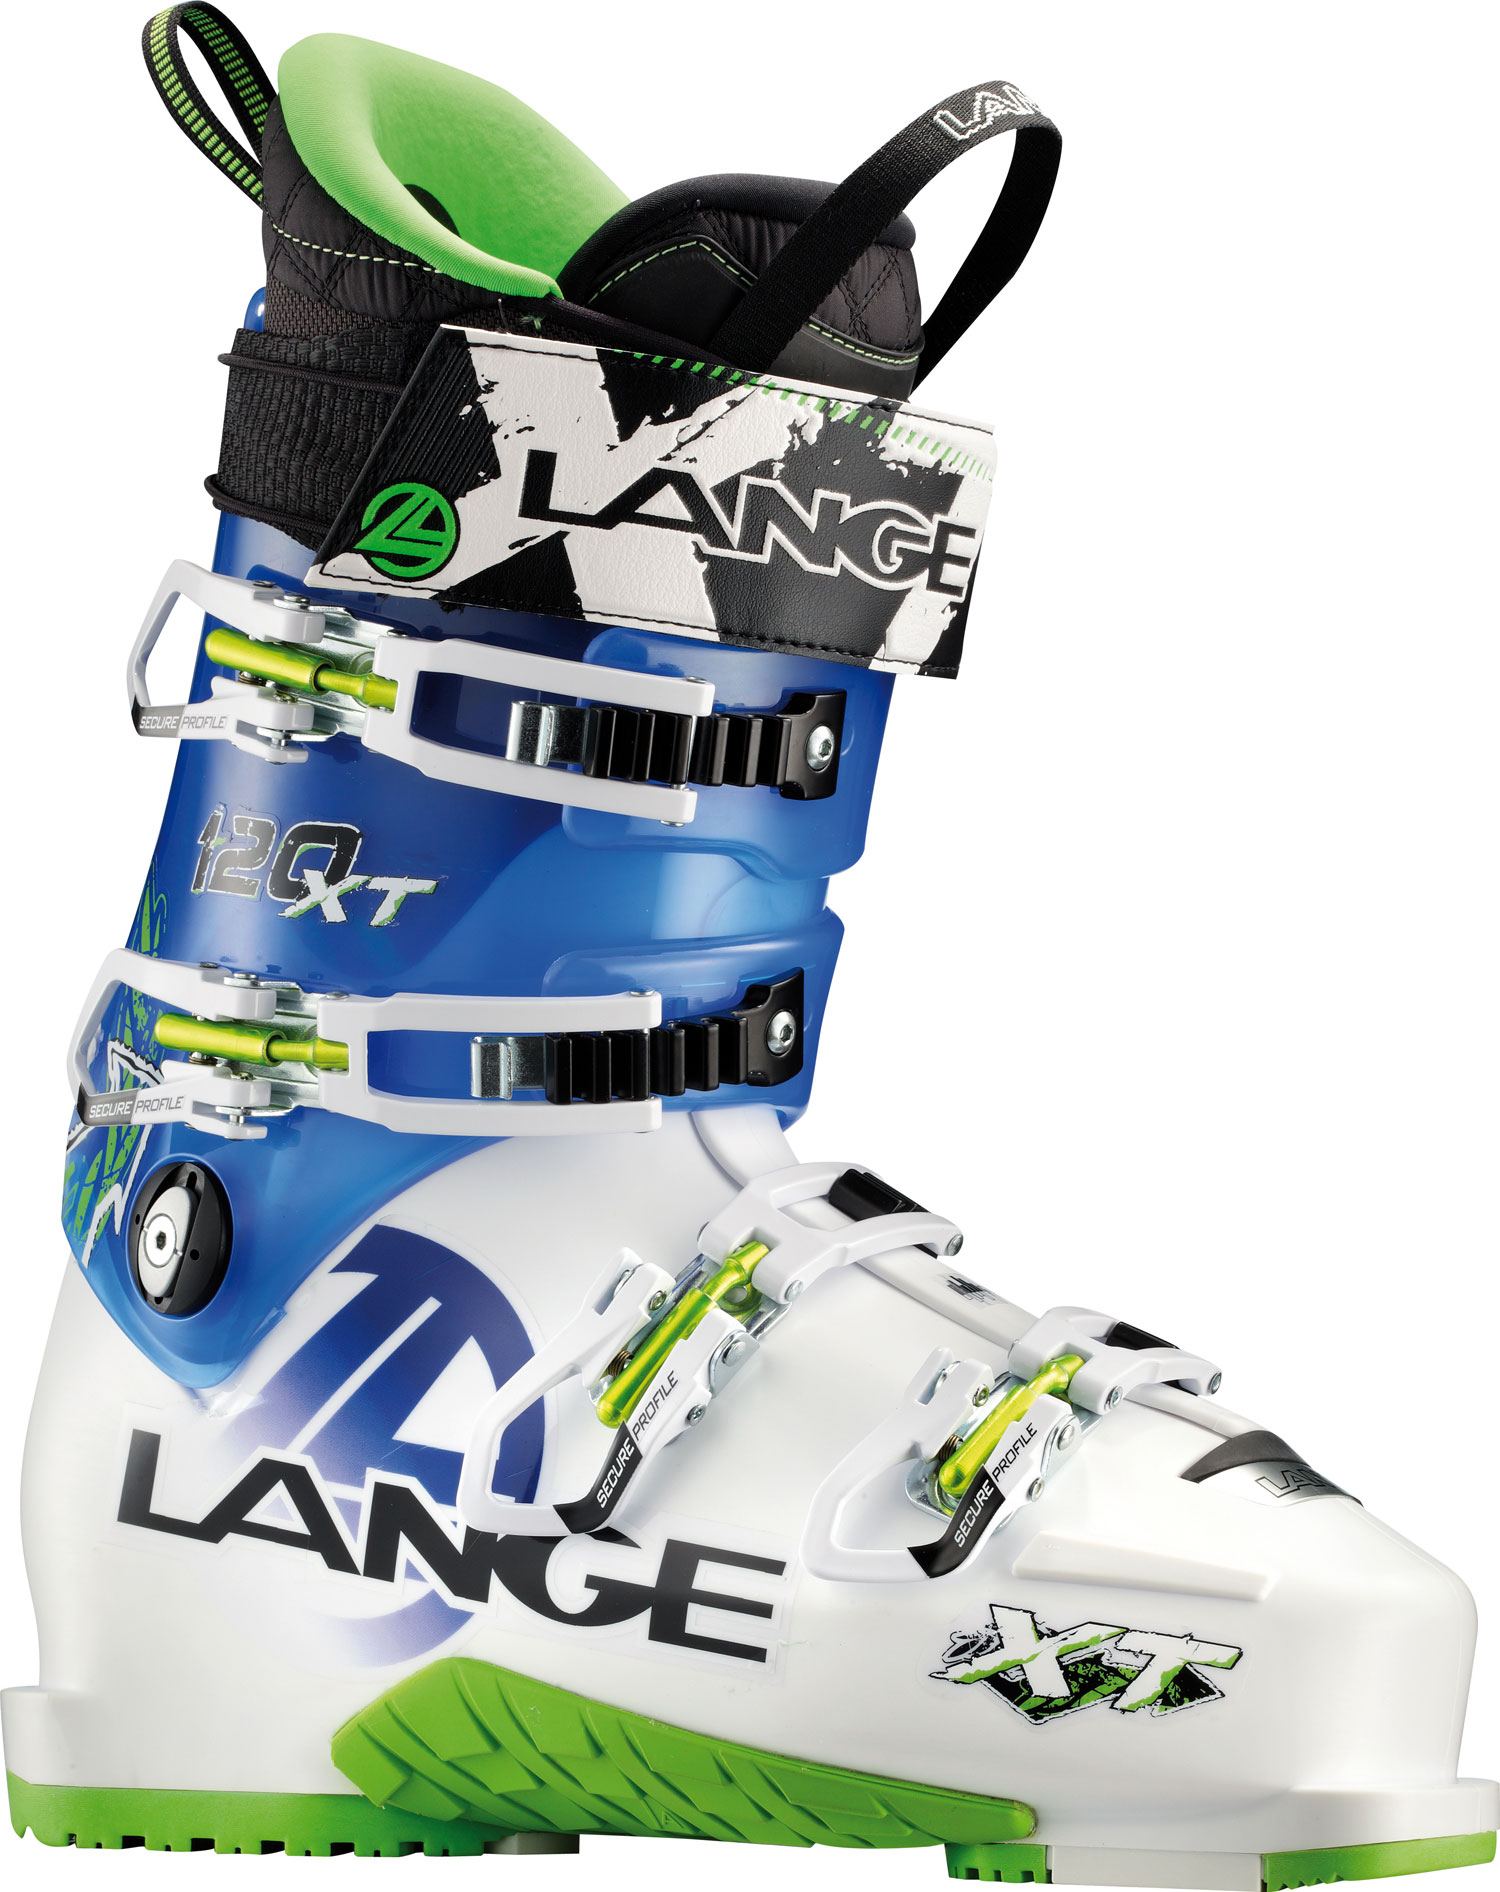 "Ski Lange's new XT boots are the first, no-compromise high-performance boots that climb. Natural Stance, mono-injected shells and Control Fit are combined with ultra-durable grip soles and arches, lightweight components, and Power V-Lock shell technology. The unique new, patented Power V-Lock provides excellent climbing range-of-motion. But, unlike all other AT and ""sidecountry"" boots, XTs feature a structurally superior, performance lower shell. The Power V-Lock integrates into the lower shell for powerful downhill high-performance skiing. XT boots are the first-of-their-kind, no-compromise freeride-adventure boots for committed skiers. Key Features of the Lange XT 120 Ski Boots: Last Width 100mm Flex Index 120 Liner Light Weight, Control Fit, Laced Canting +/- 1,5° Power Strap 50mm Shell Material Polyether Cuff Material Polyolefin Hp Soles Ultra Grip Sole & Arch - $519.95"